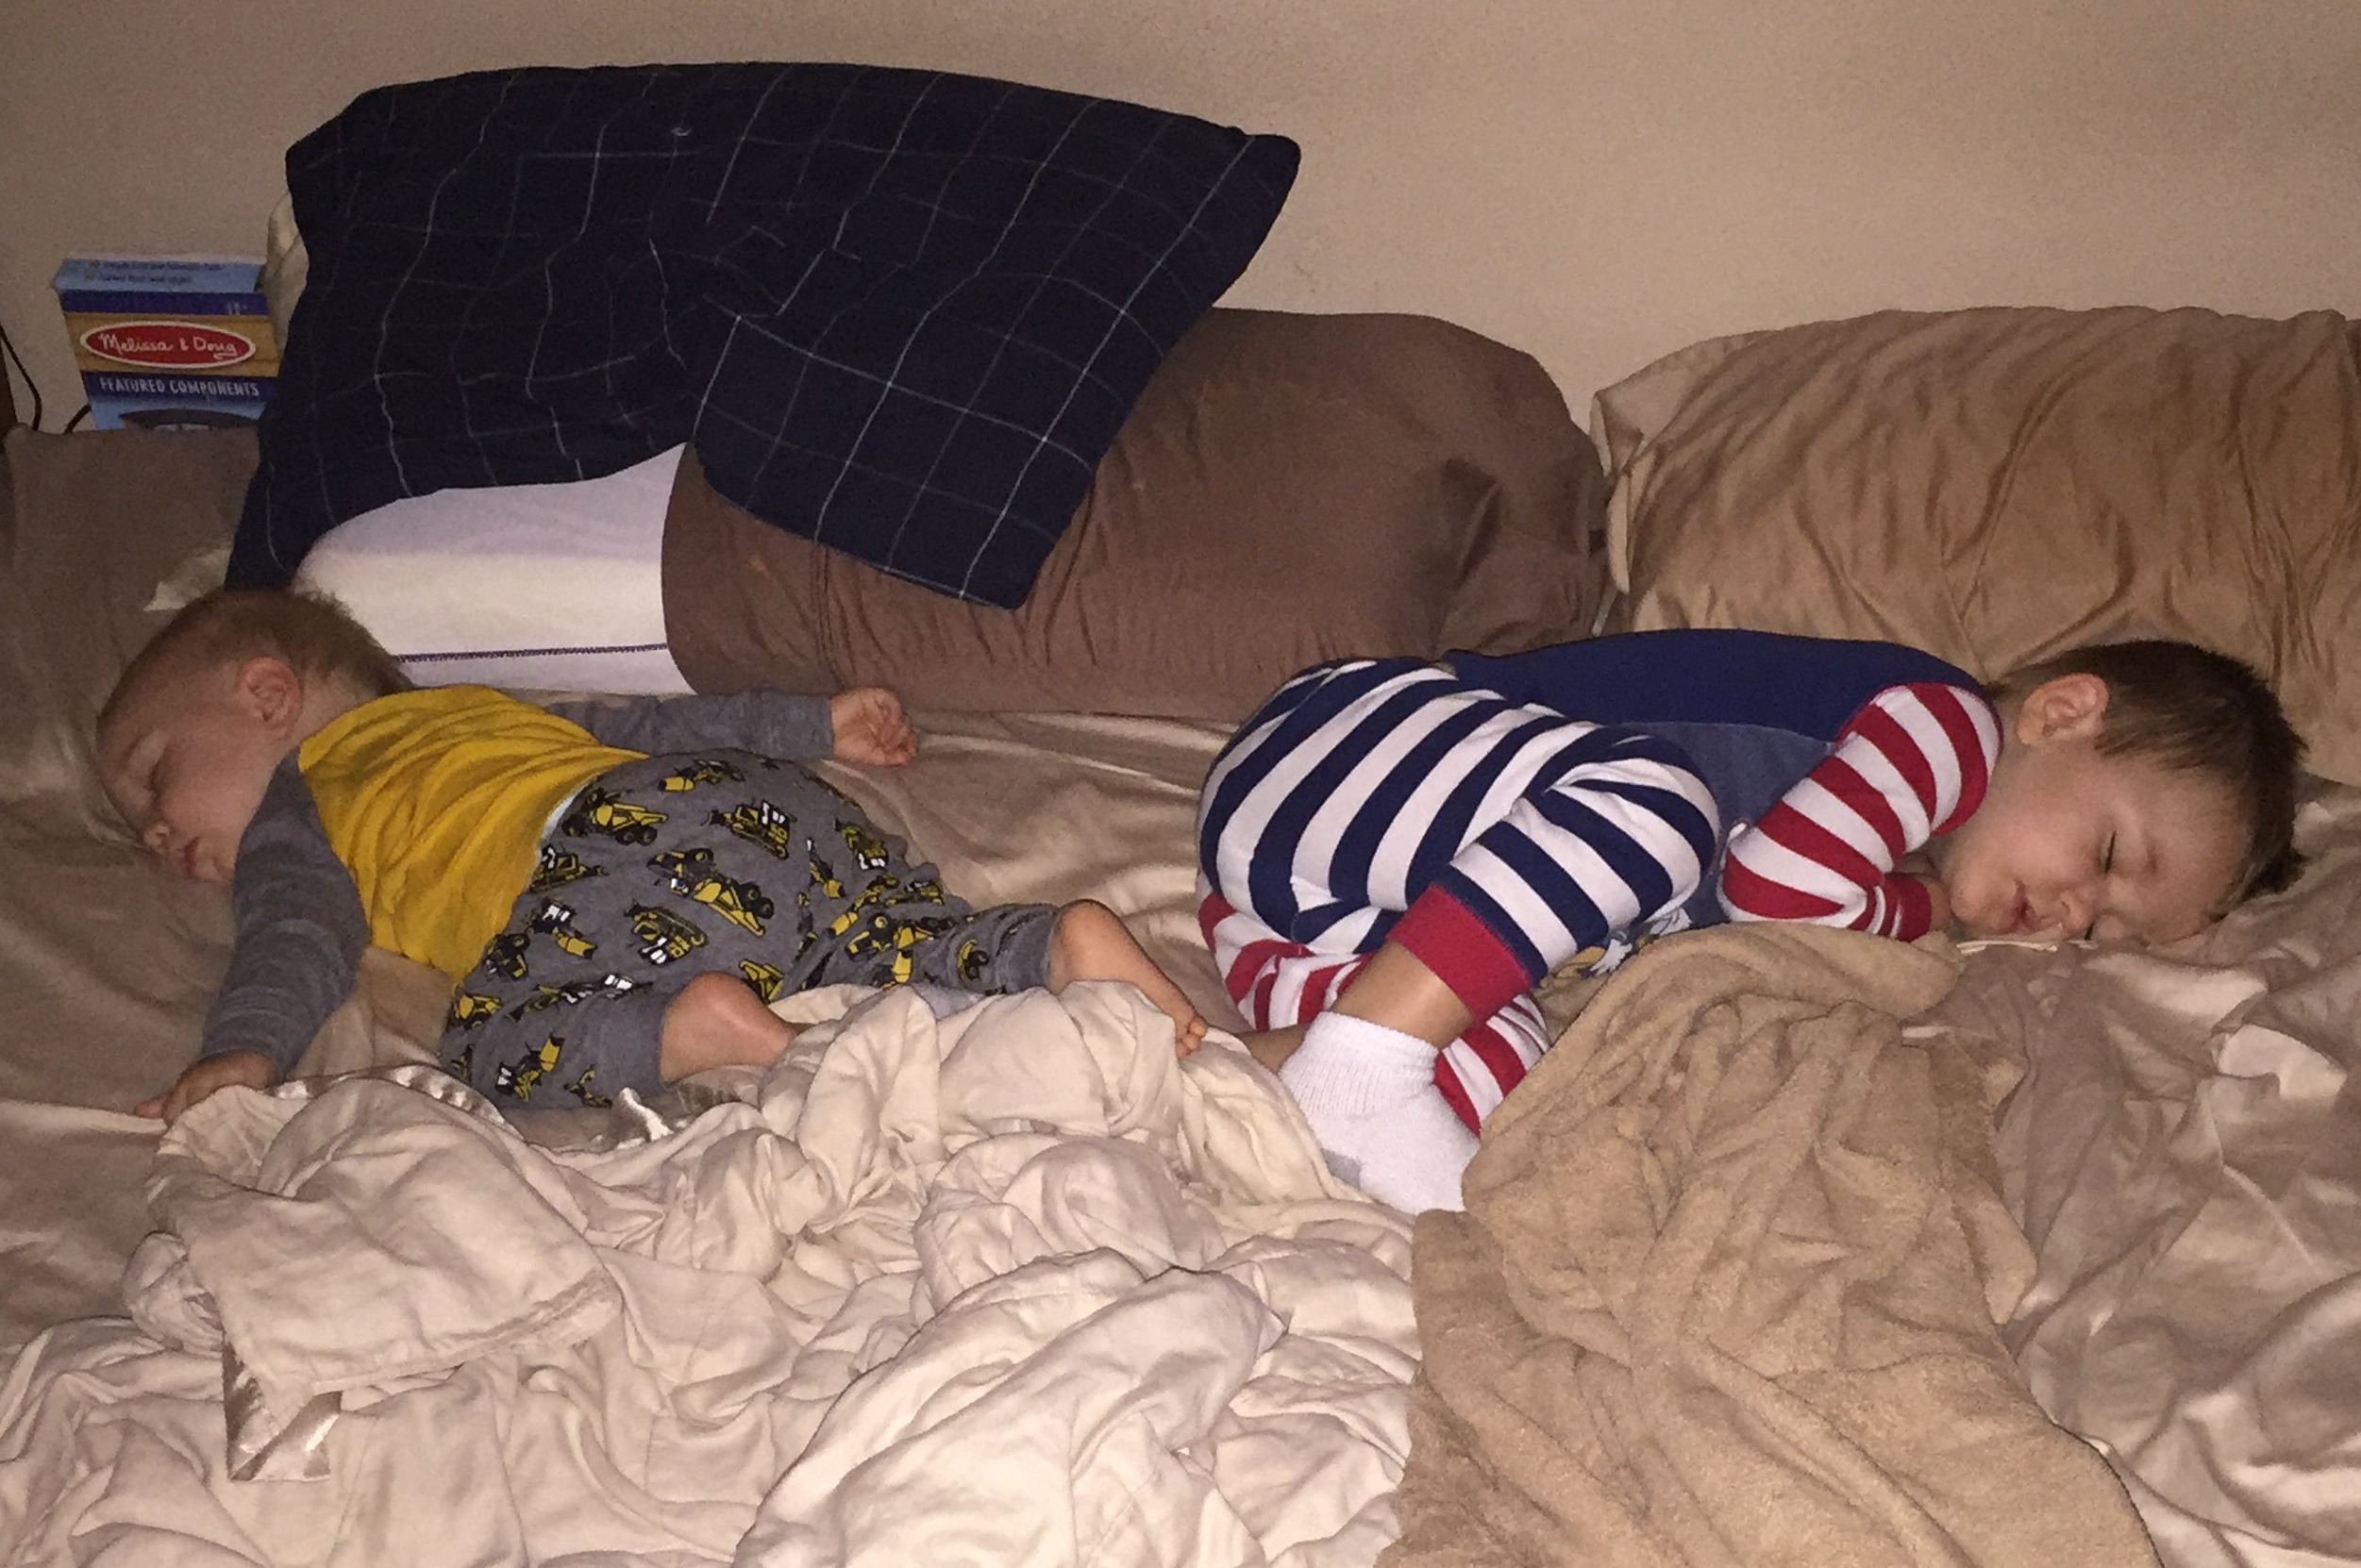 Co-Sleeping With Your Children